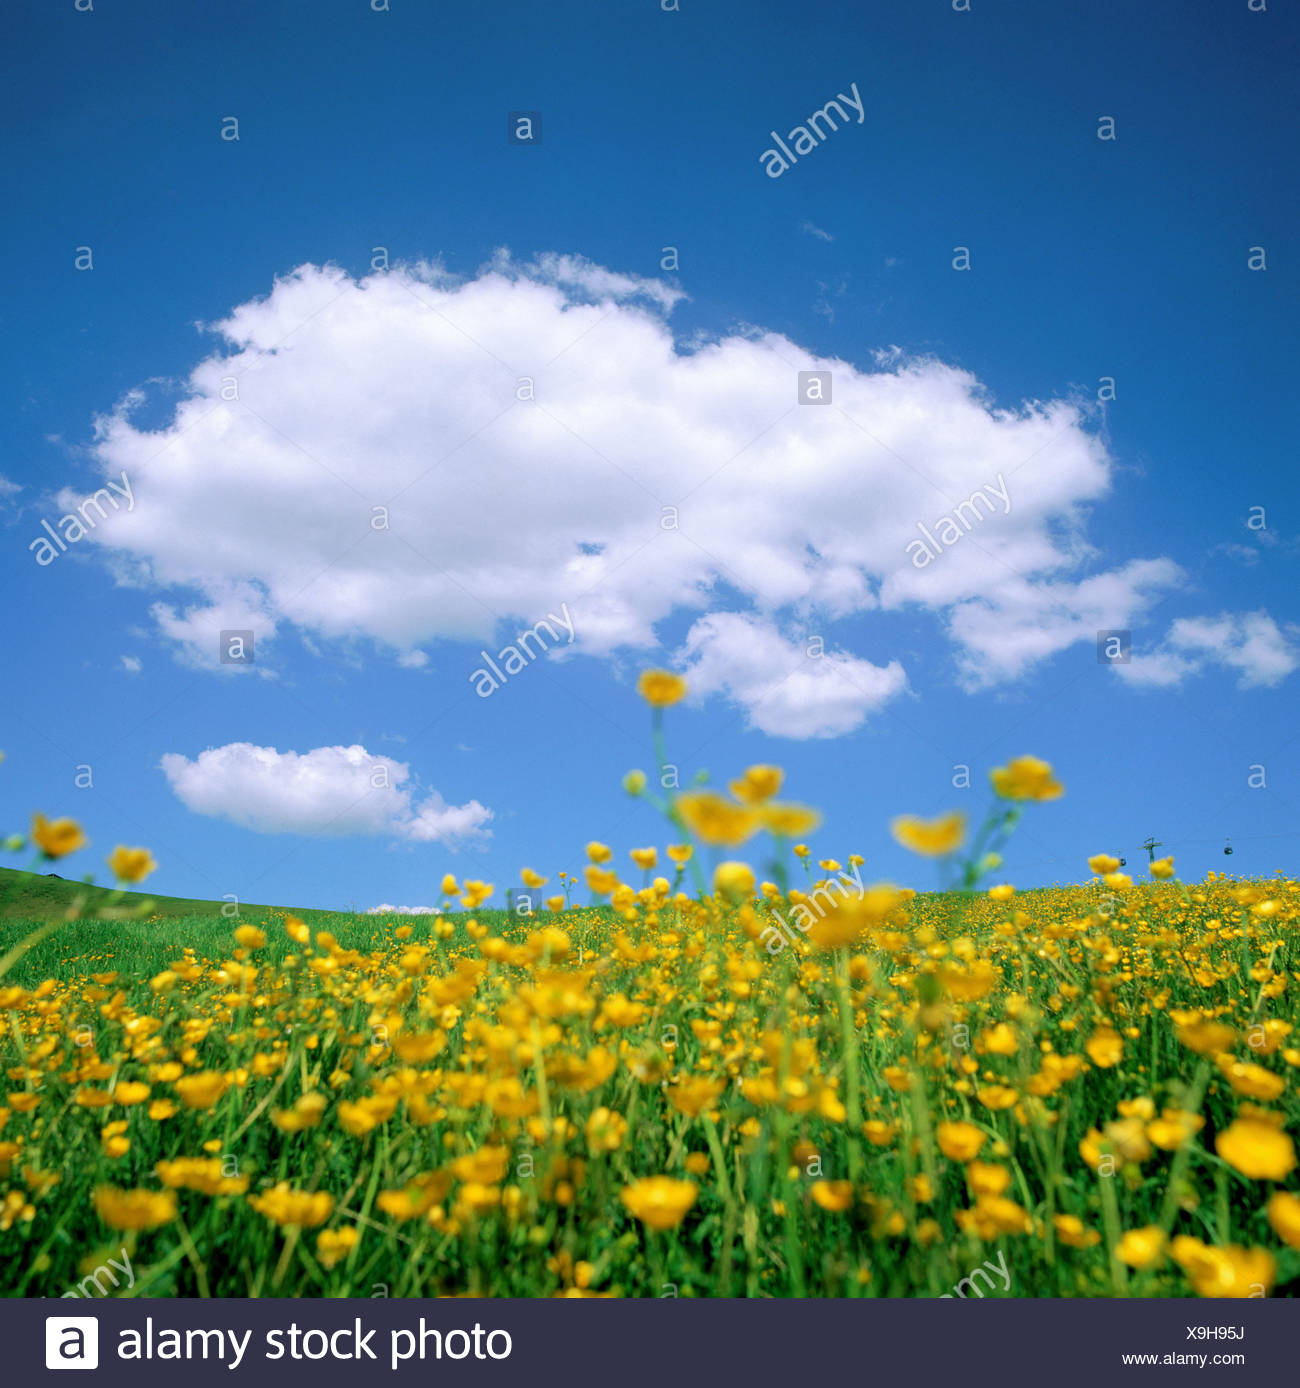 Mountain Pasture Bern Flowers Yellow Flower Meadow Sky Scenery